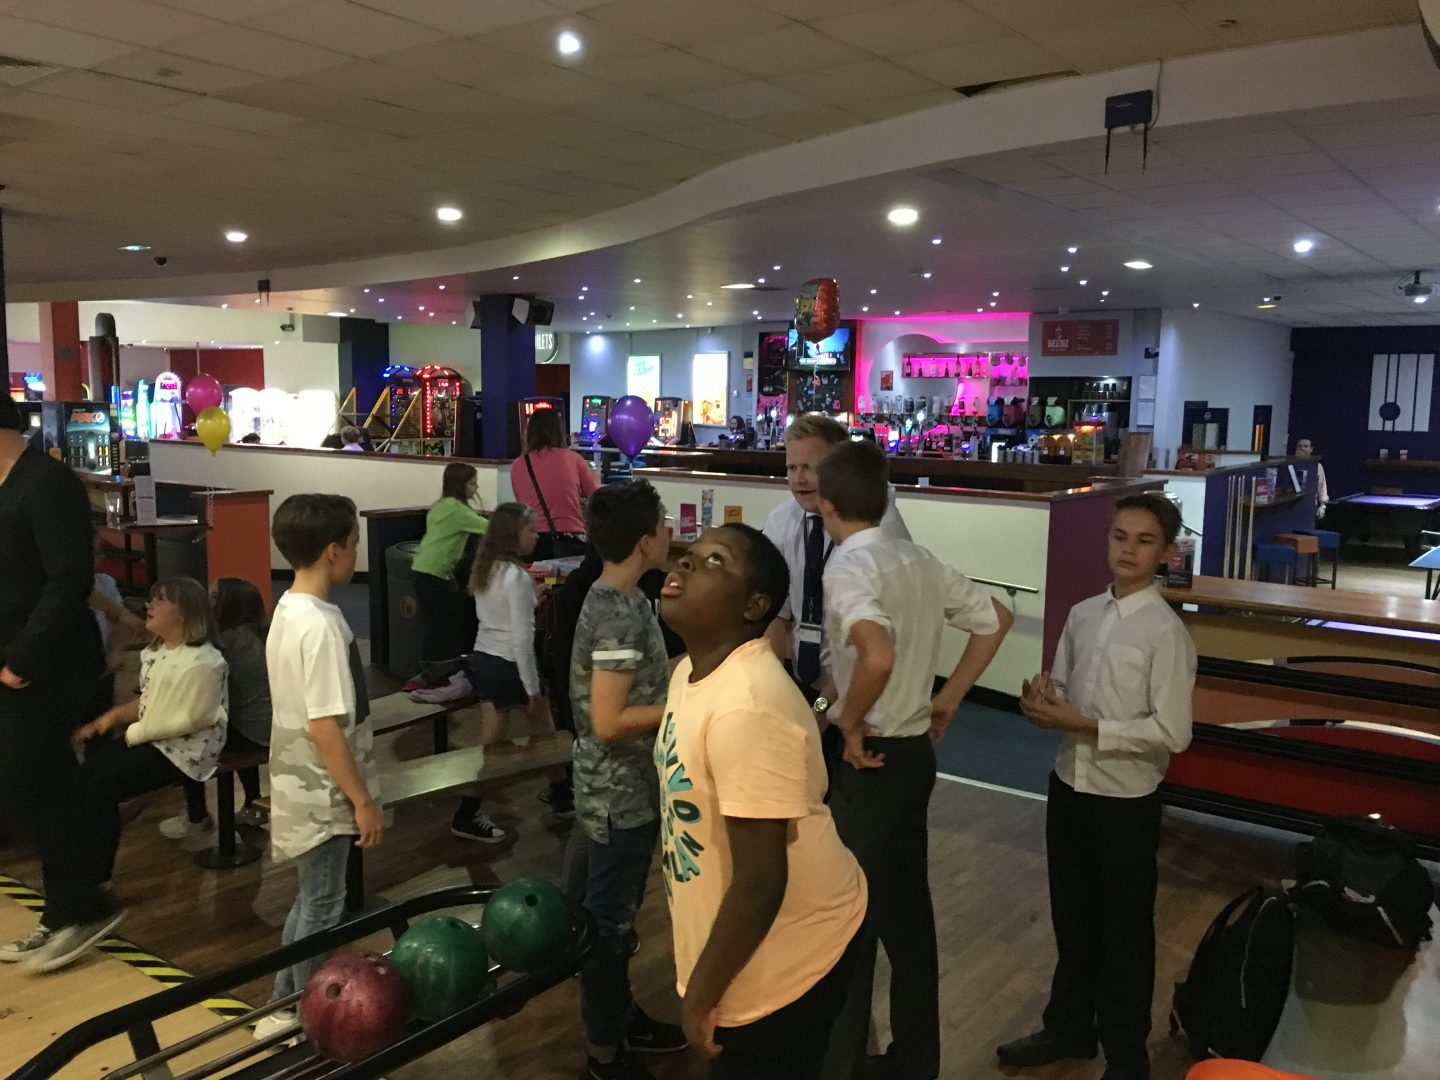 QHS pupils enjoy a night of bowling